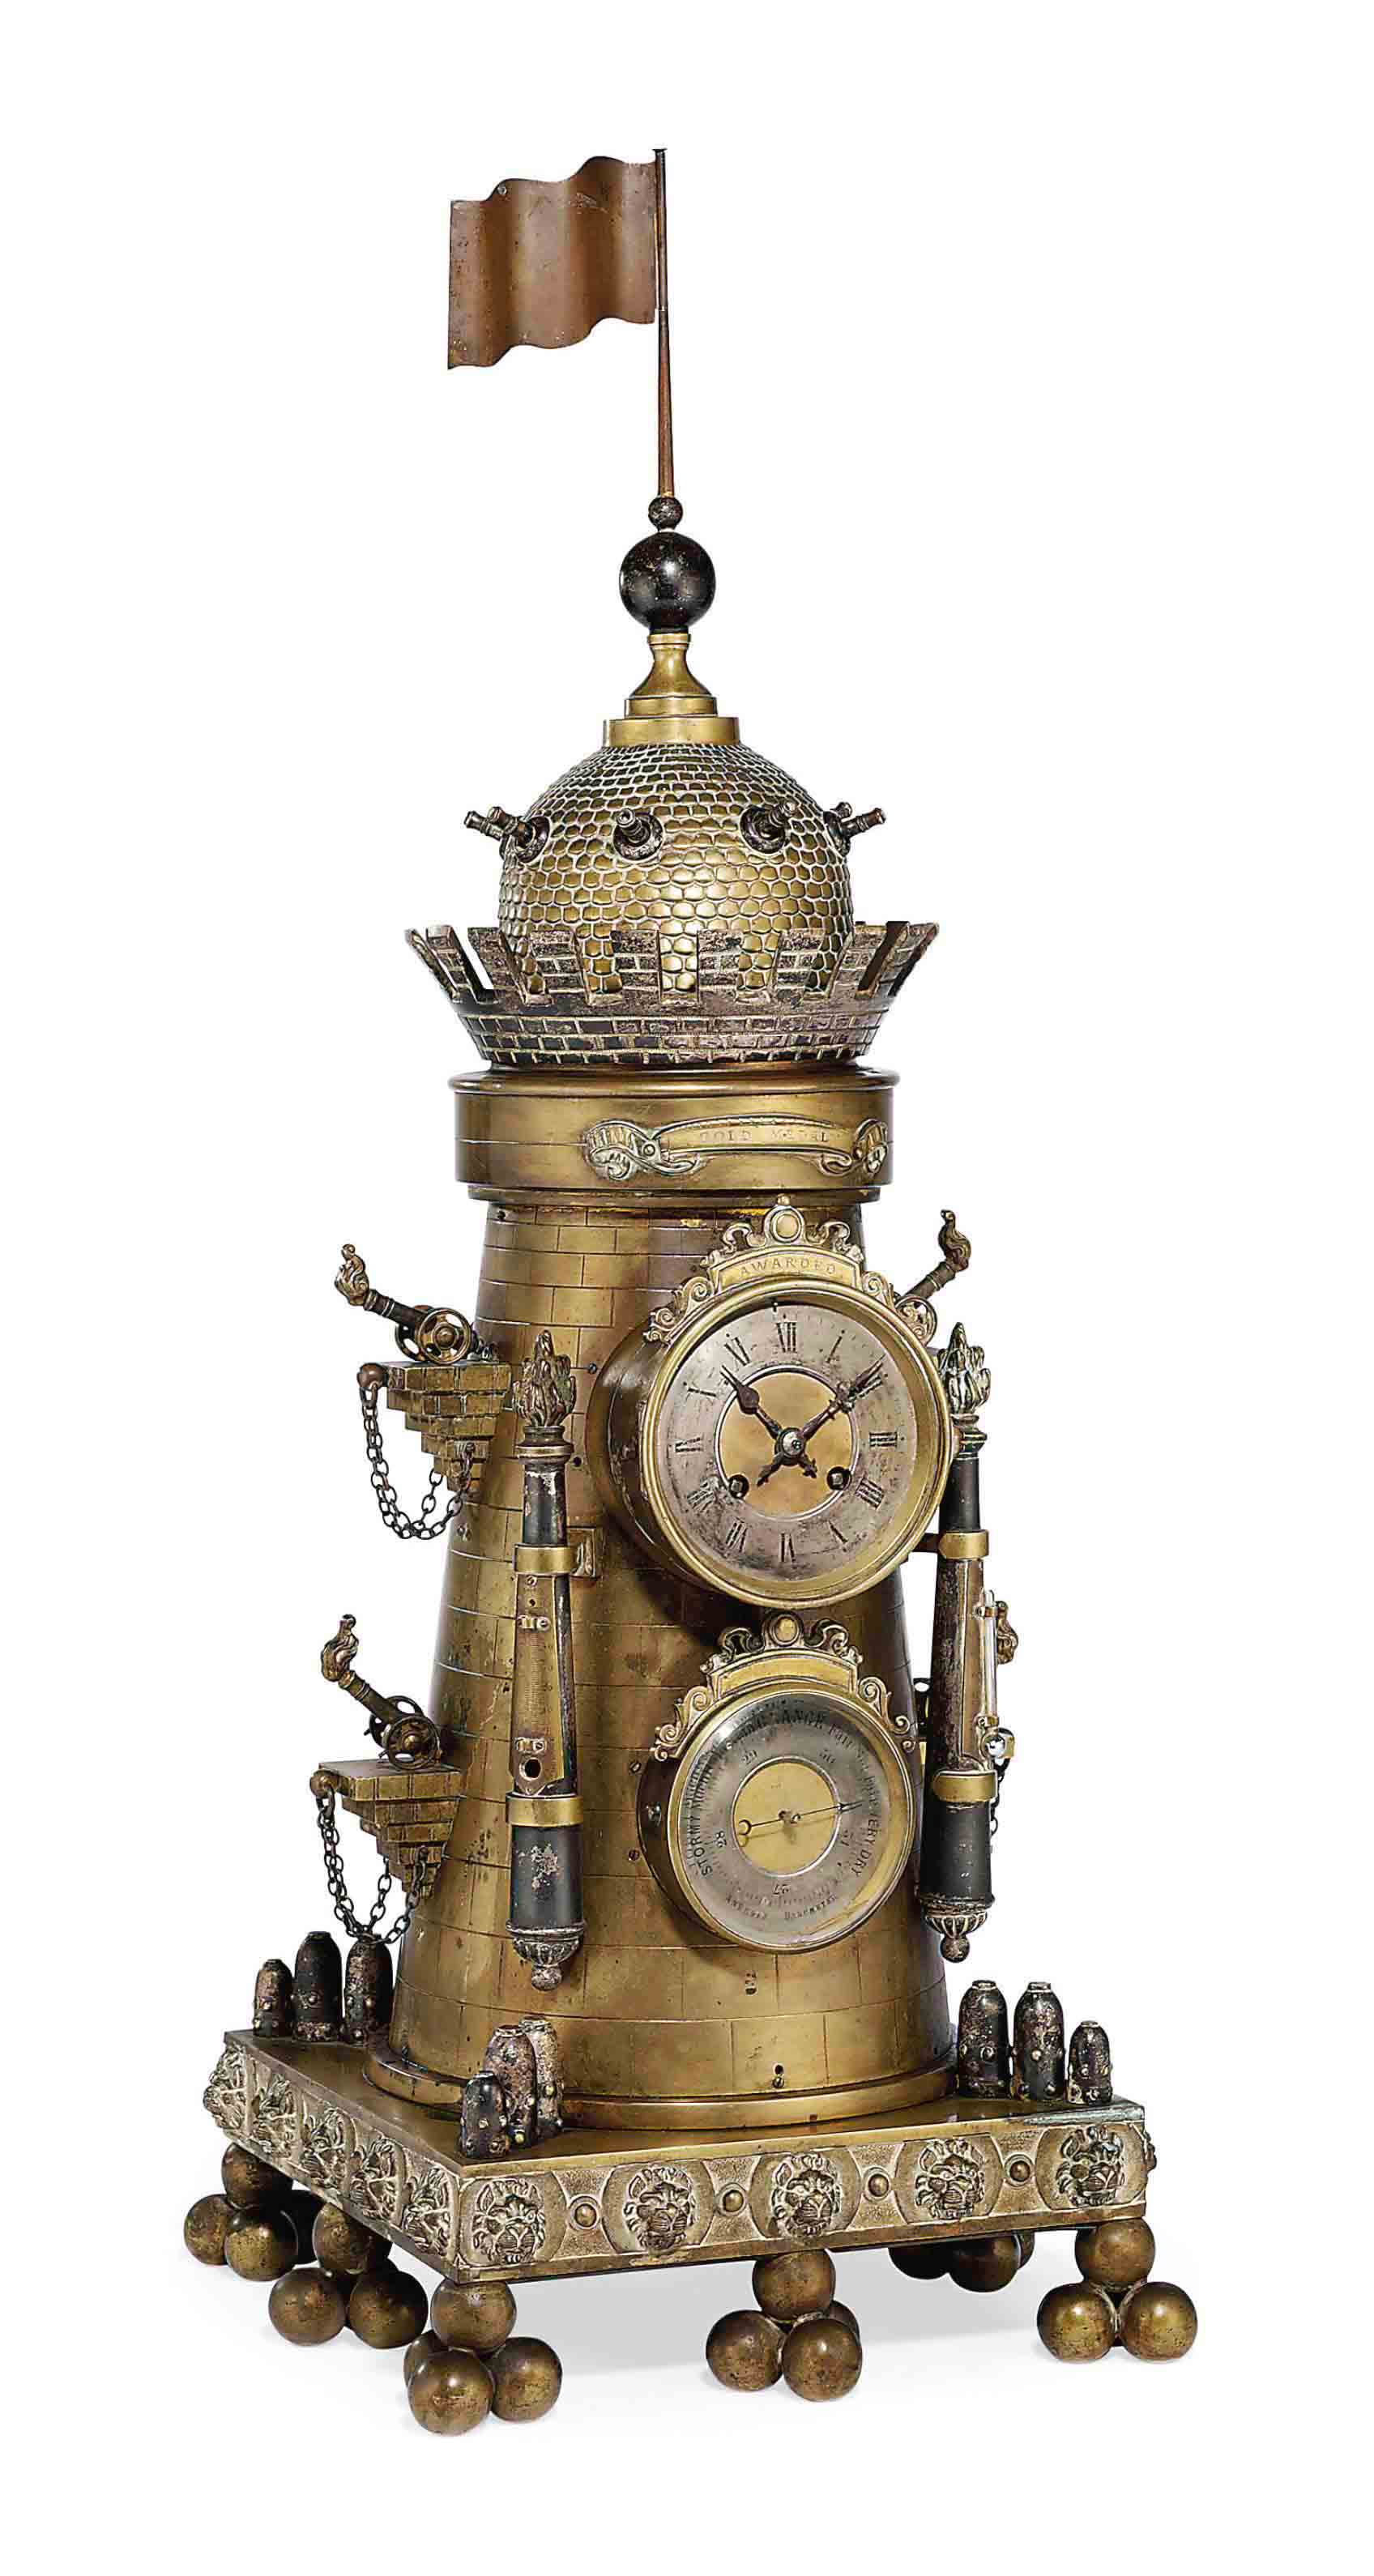 A FRENCH PART-SILVERED BRASS STRIKING NOVELTY CLOCK WITH BAROMETER, THERMOMETERS AND AUTOMATON GUN TURRET